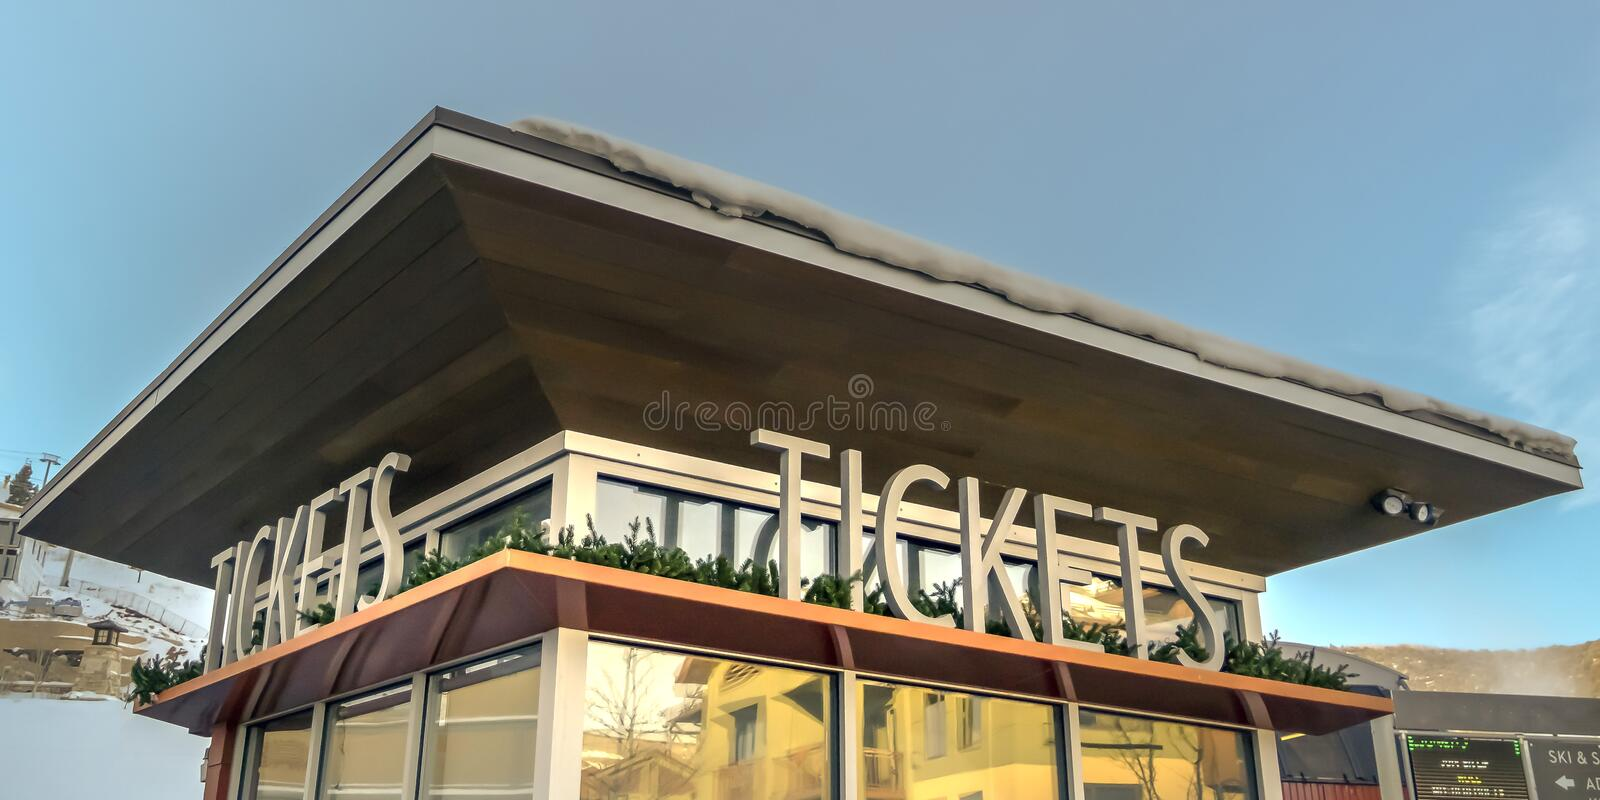 Ticket office with snow covered roof in winter royalty free stock photography